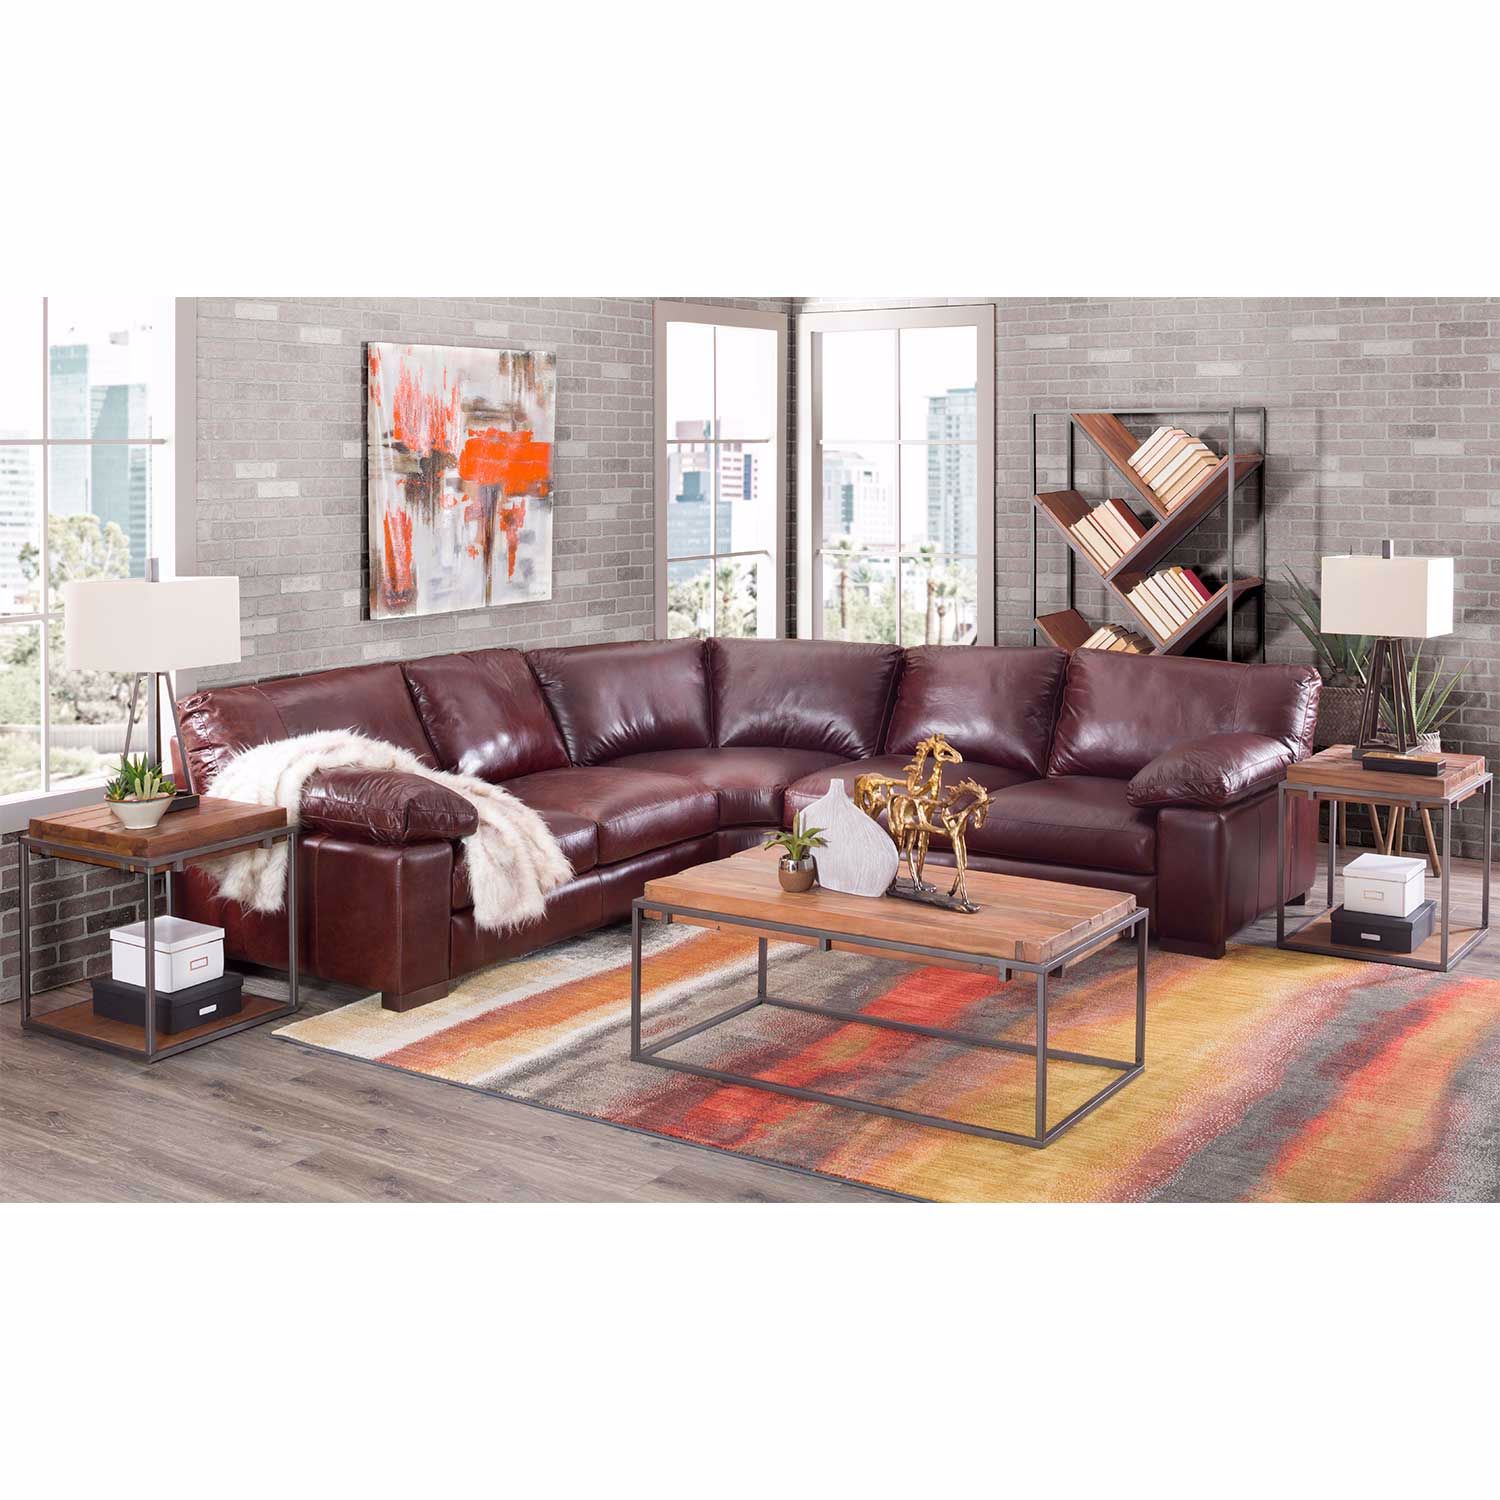 Picture of Barcelona All Leather 3 Piece Sectional